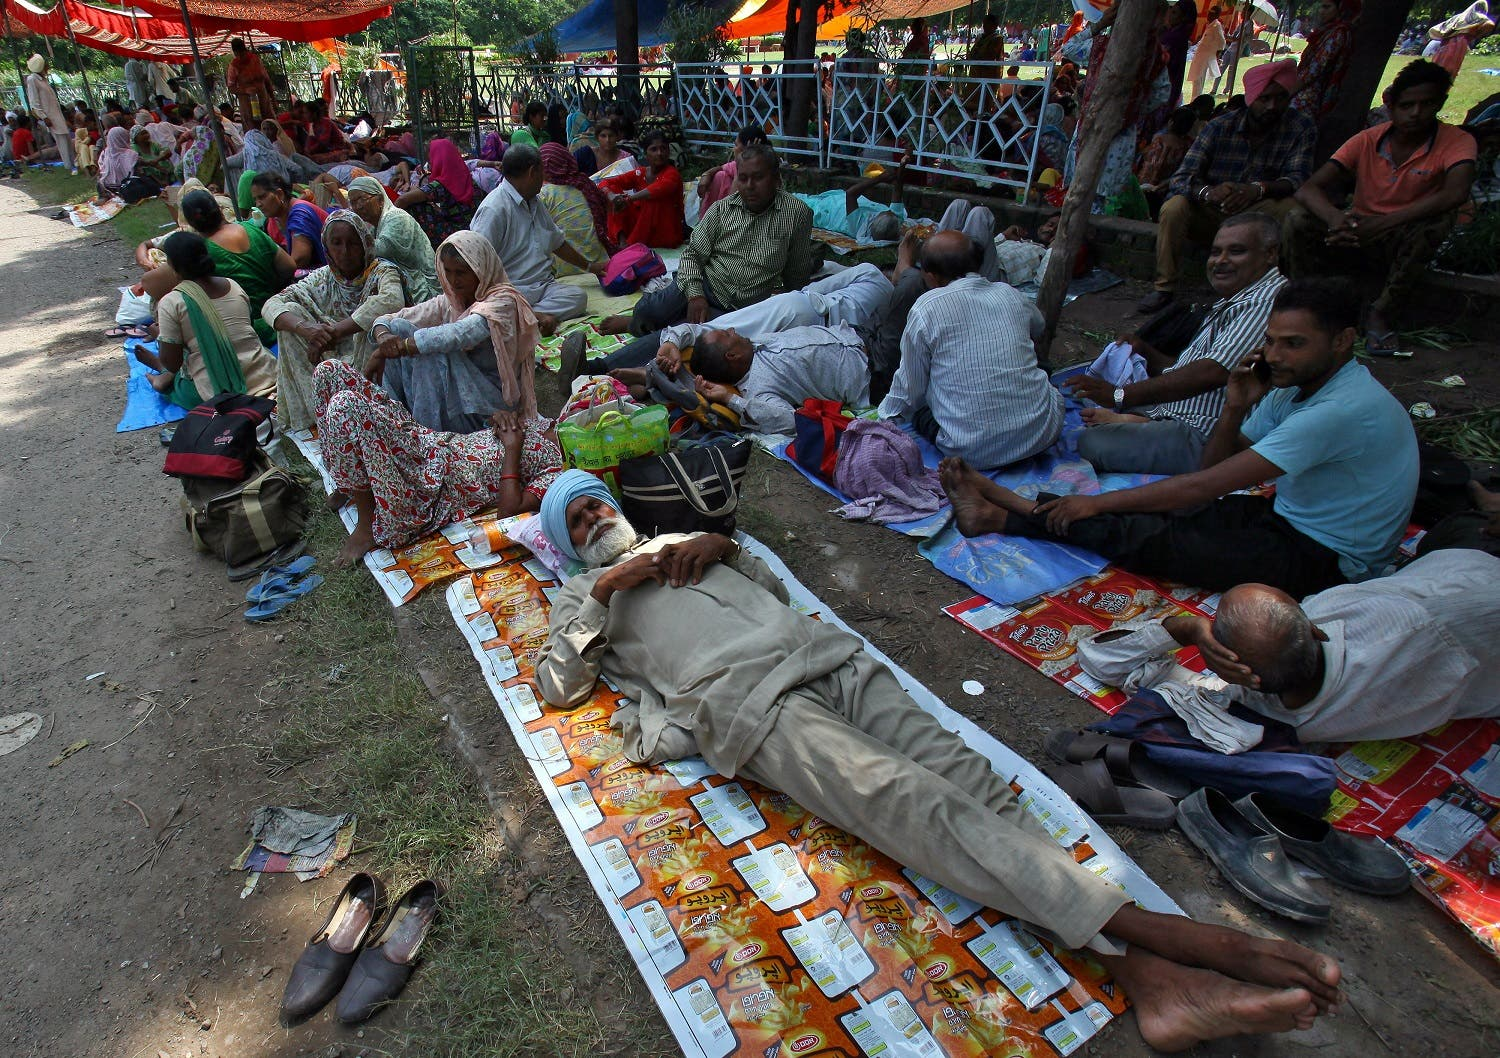 Supporters of Gurmeet Ram Rahim Singh rest as they gather near a stadium in Panchkula in the northern state of Haryana, India, on August 24, 2017. (Reuters)